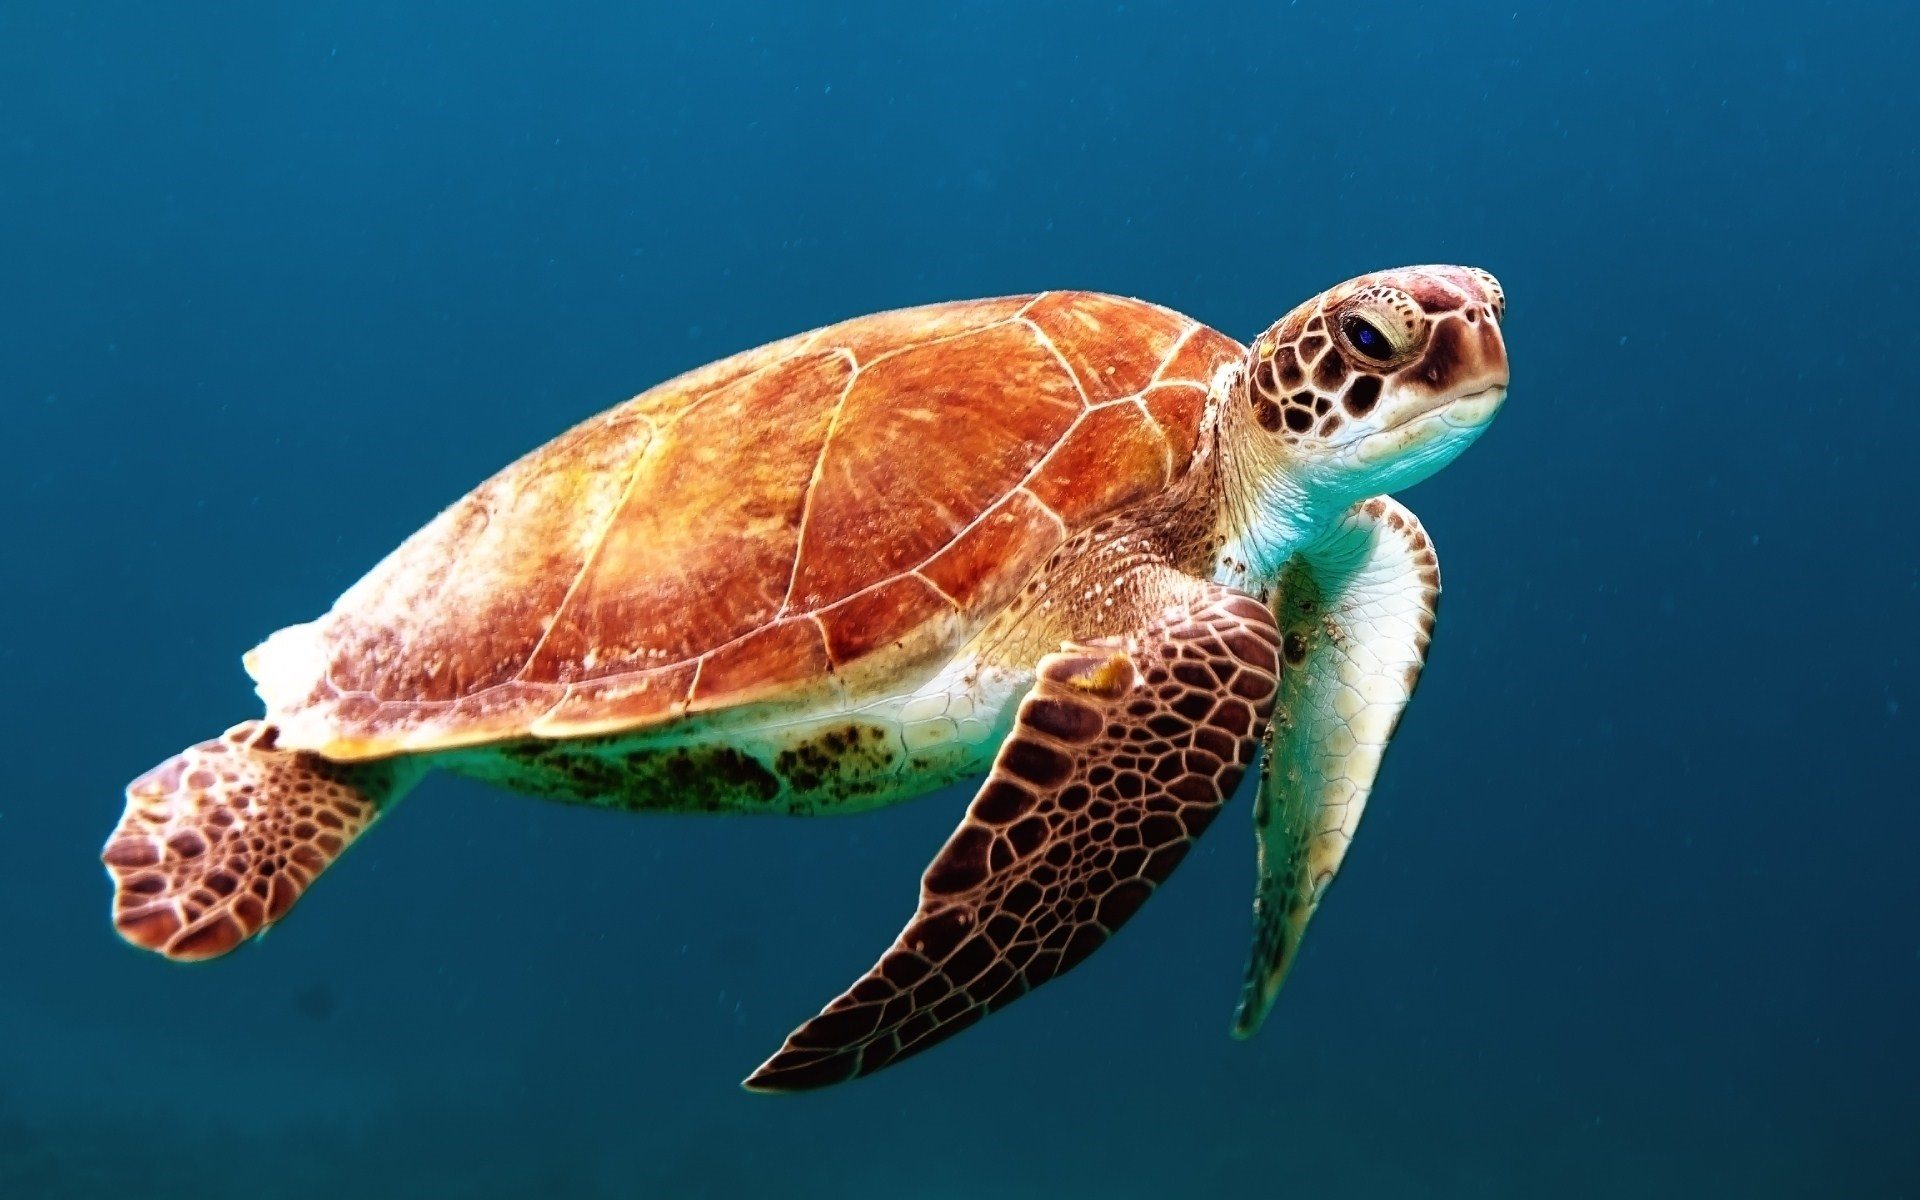 1920x1080 Turtle Reptile Underwater Laptop Full Hd 1080p Hd 4k Wallpapers Images Backgrounds Photos And Pictures